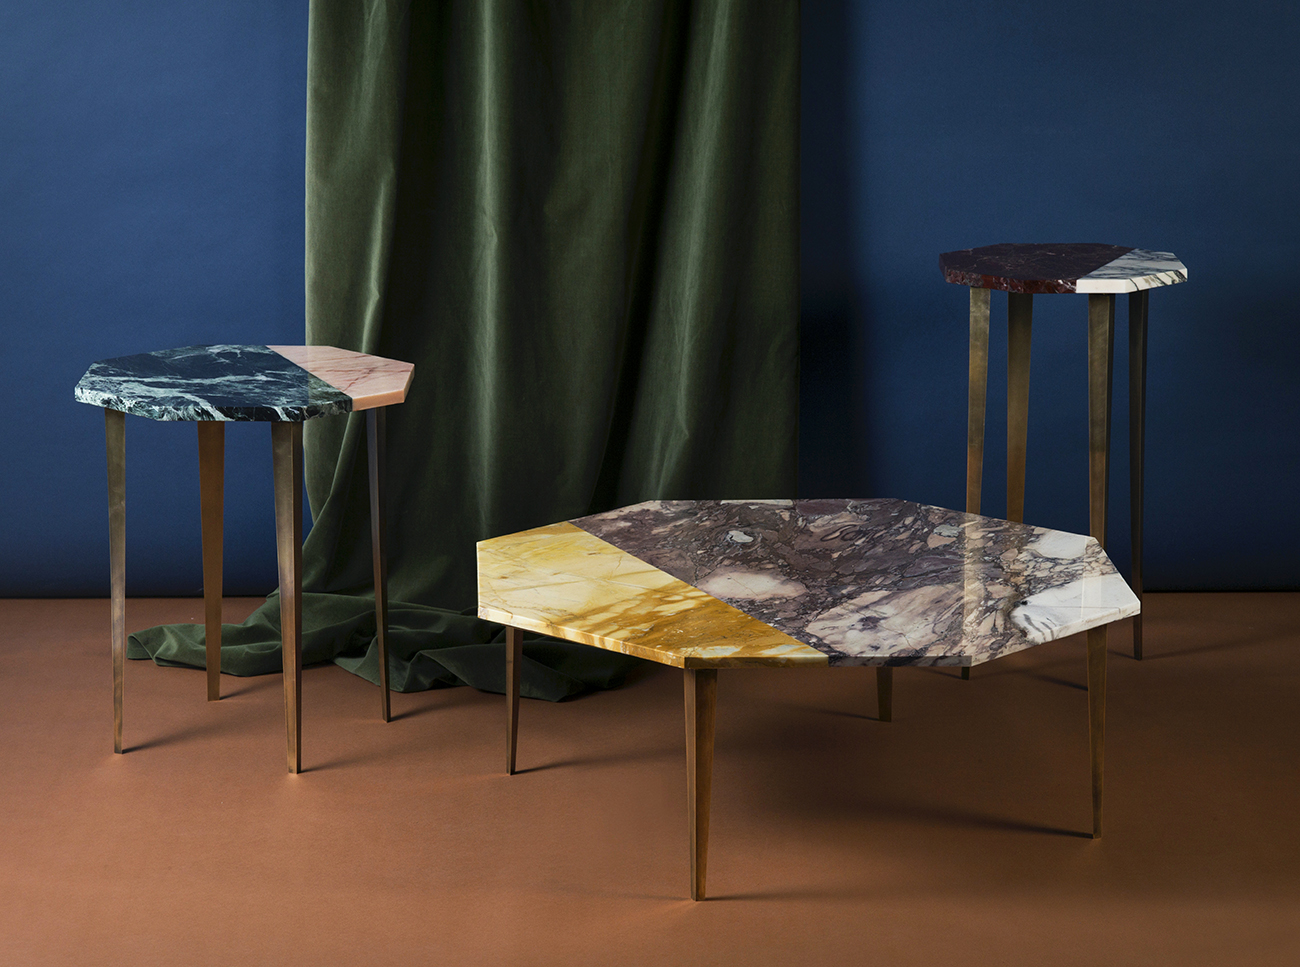 Marble tables -  http://campbell-rey.com/case-study/thierry-table-collection/